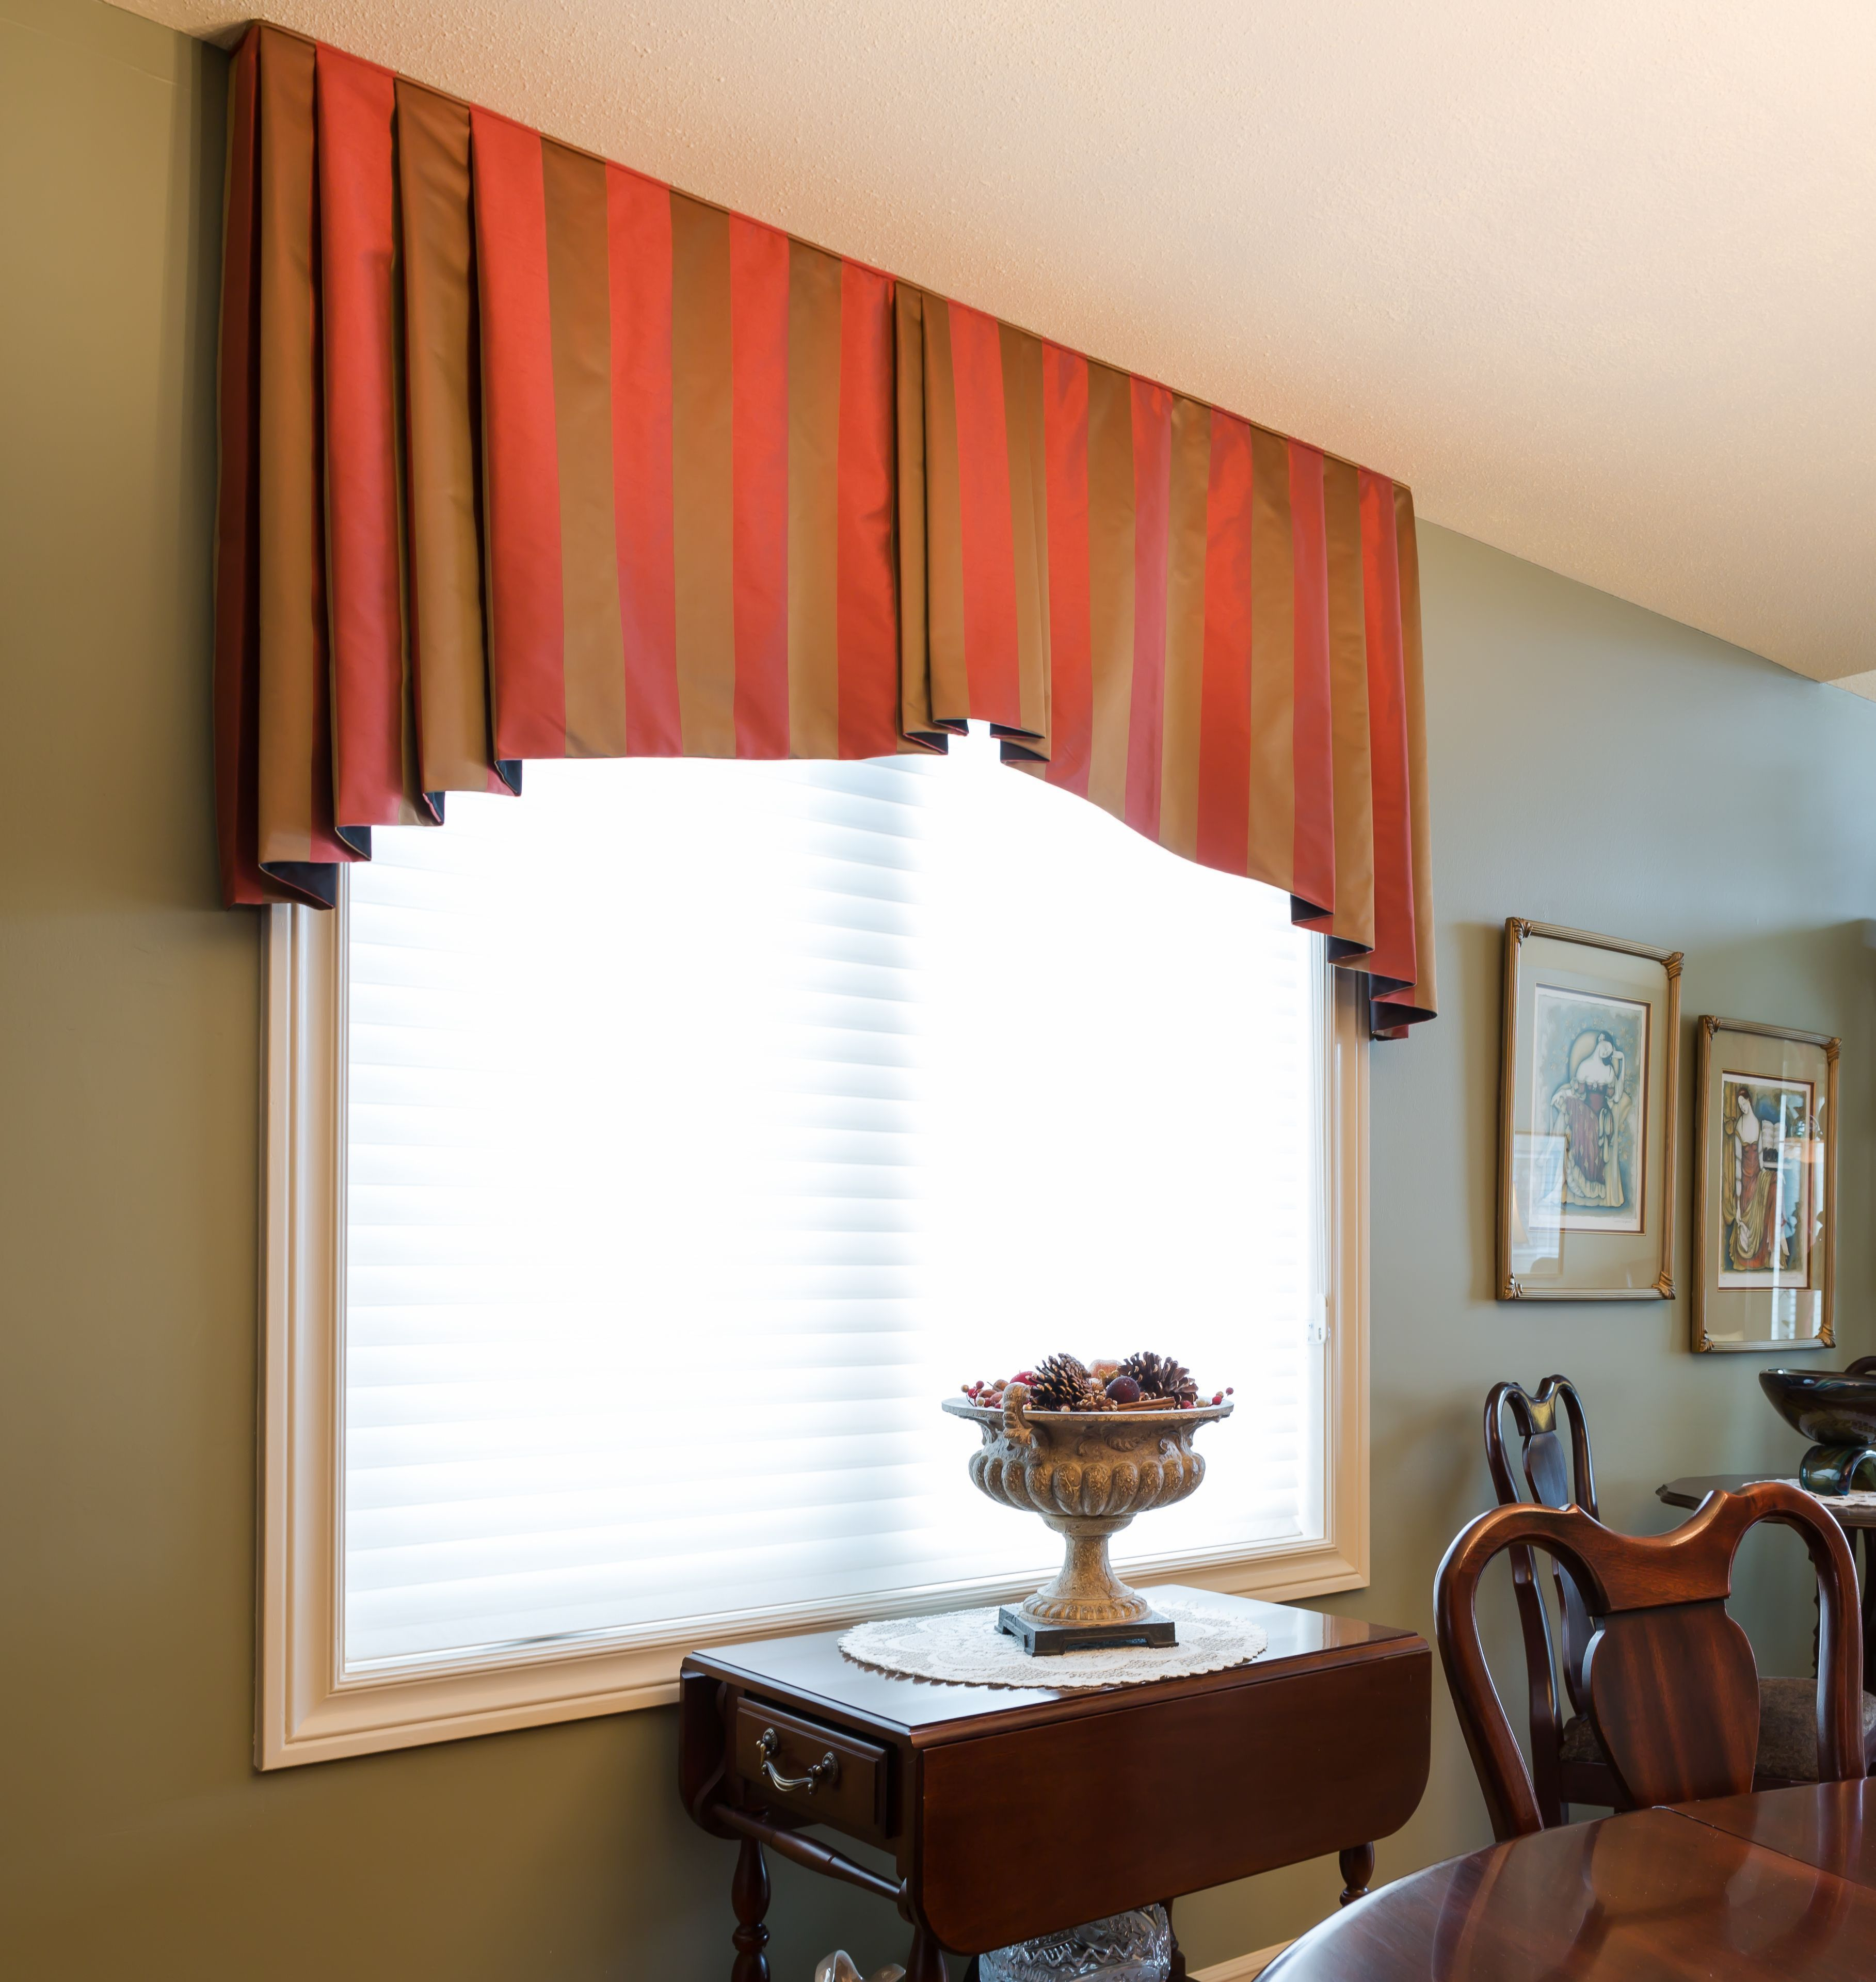 Window dressing ideas for arched windows   awesome useful ideas modern blinds chandeliers diy blinds martha